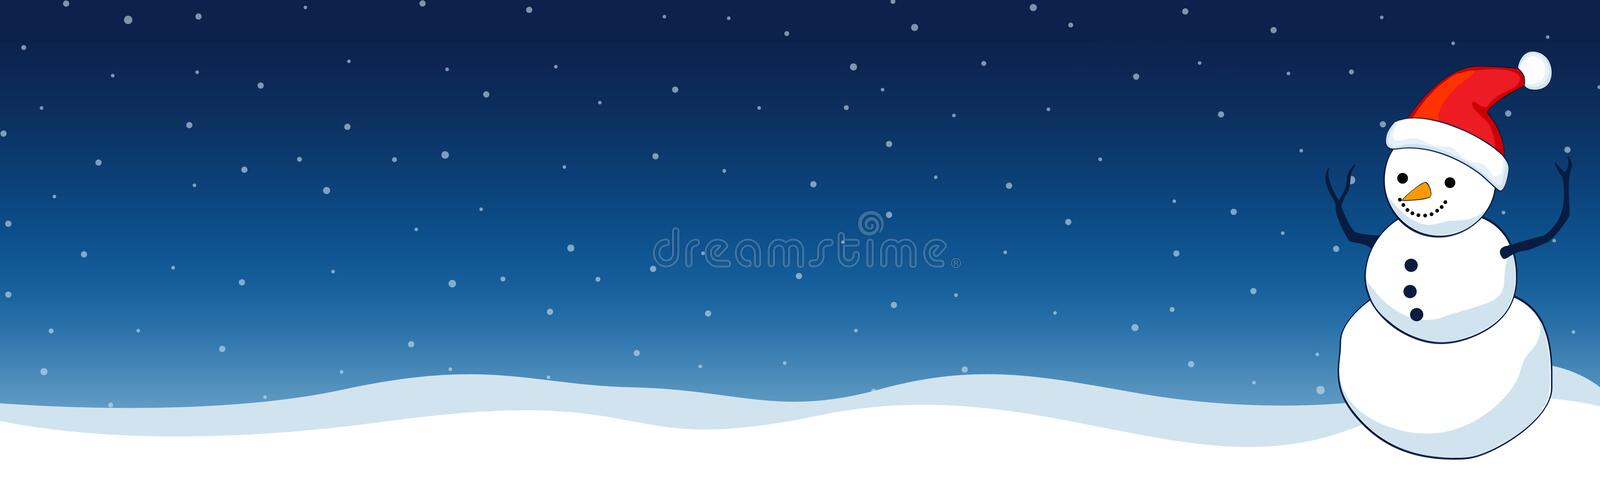 Christmas Header / Banner stock illustration